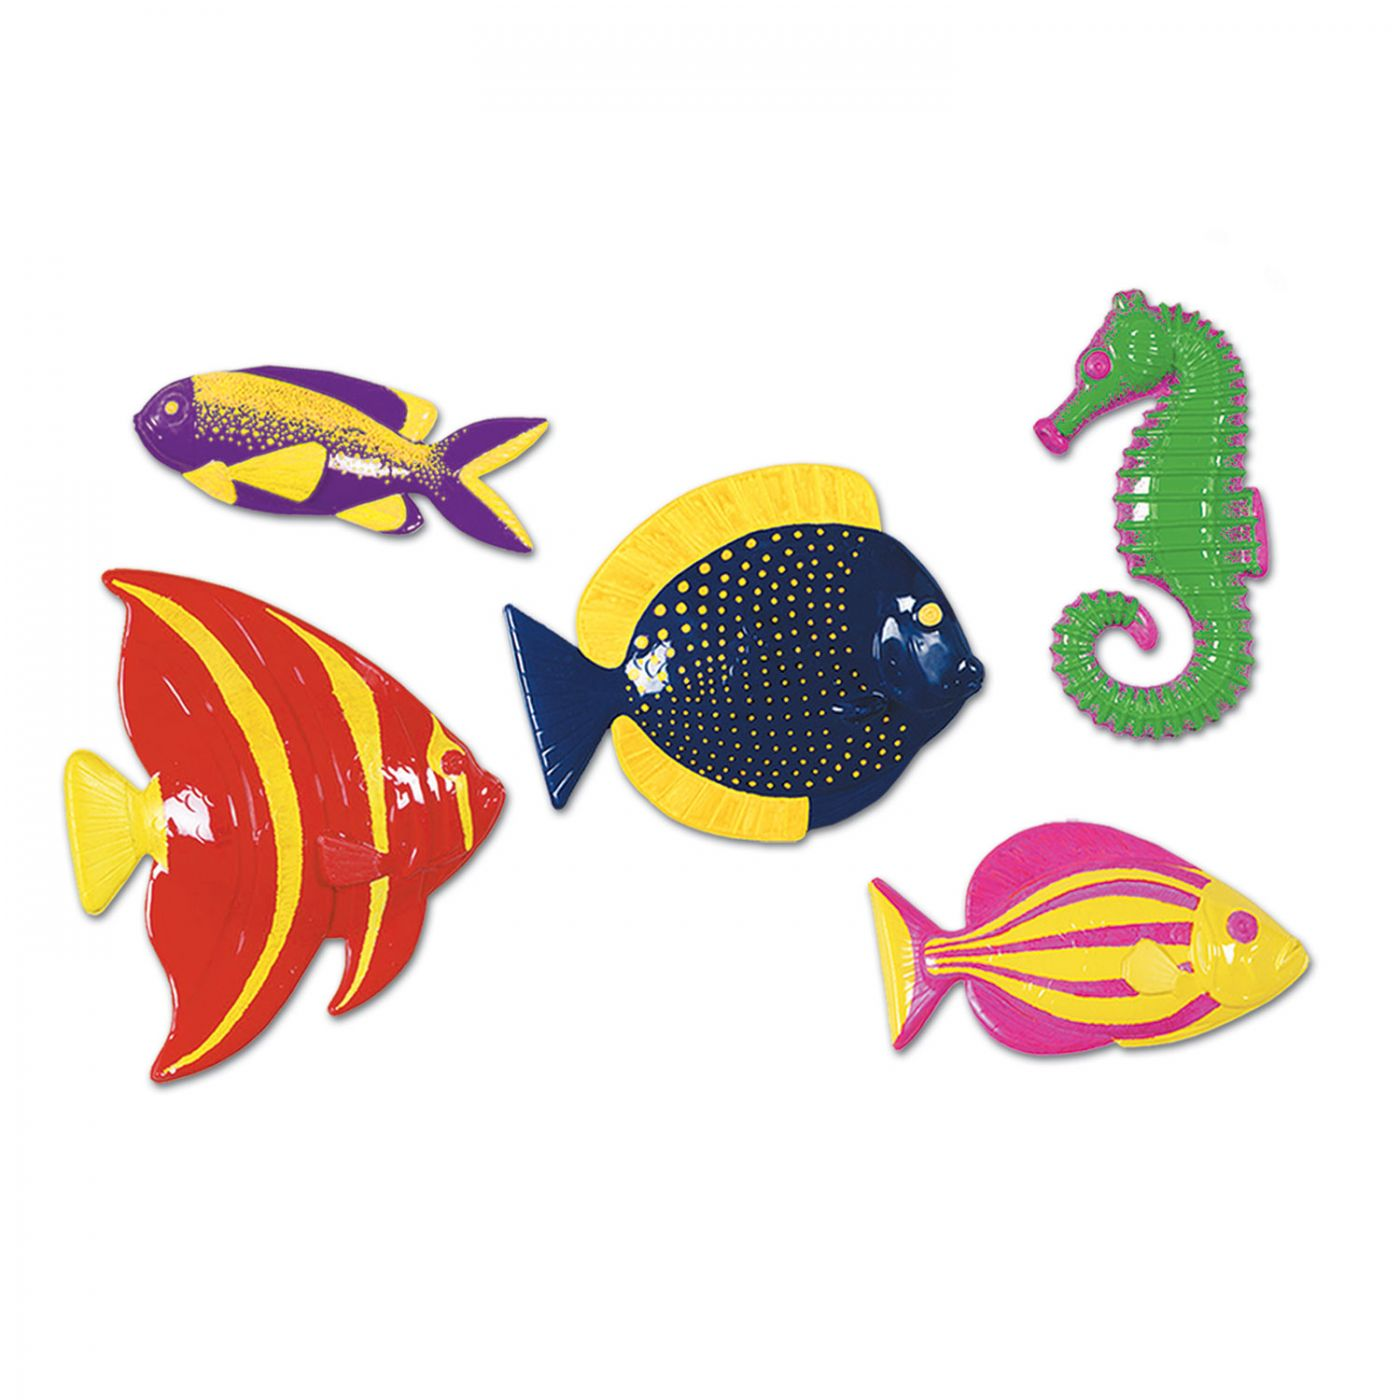 Plastic Tropical Fish image